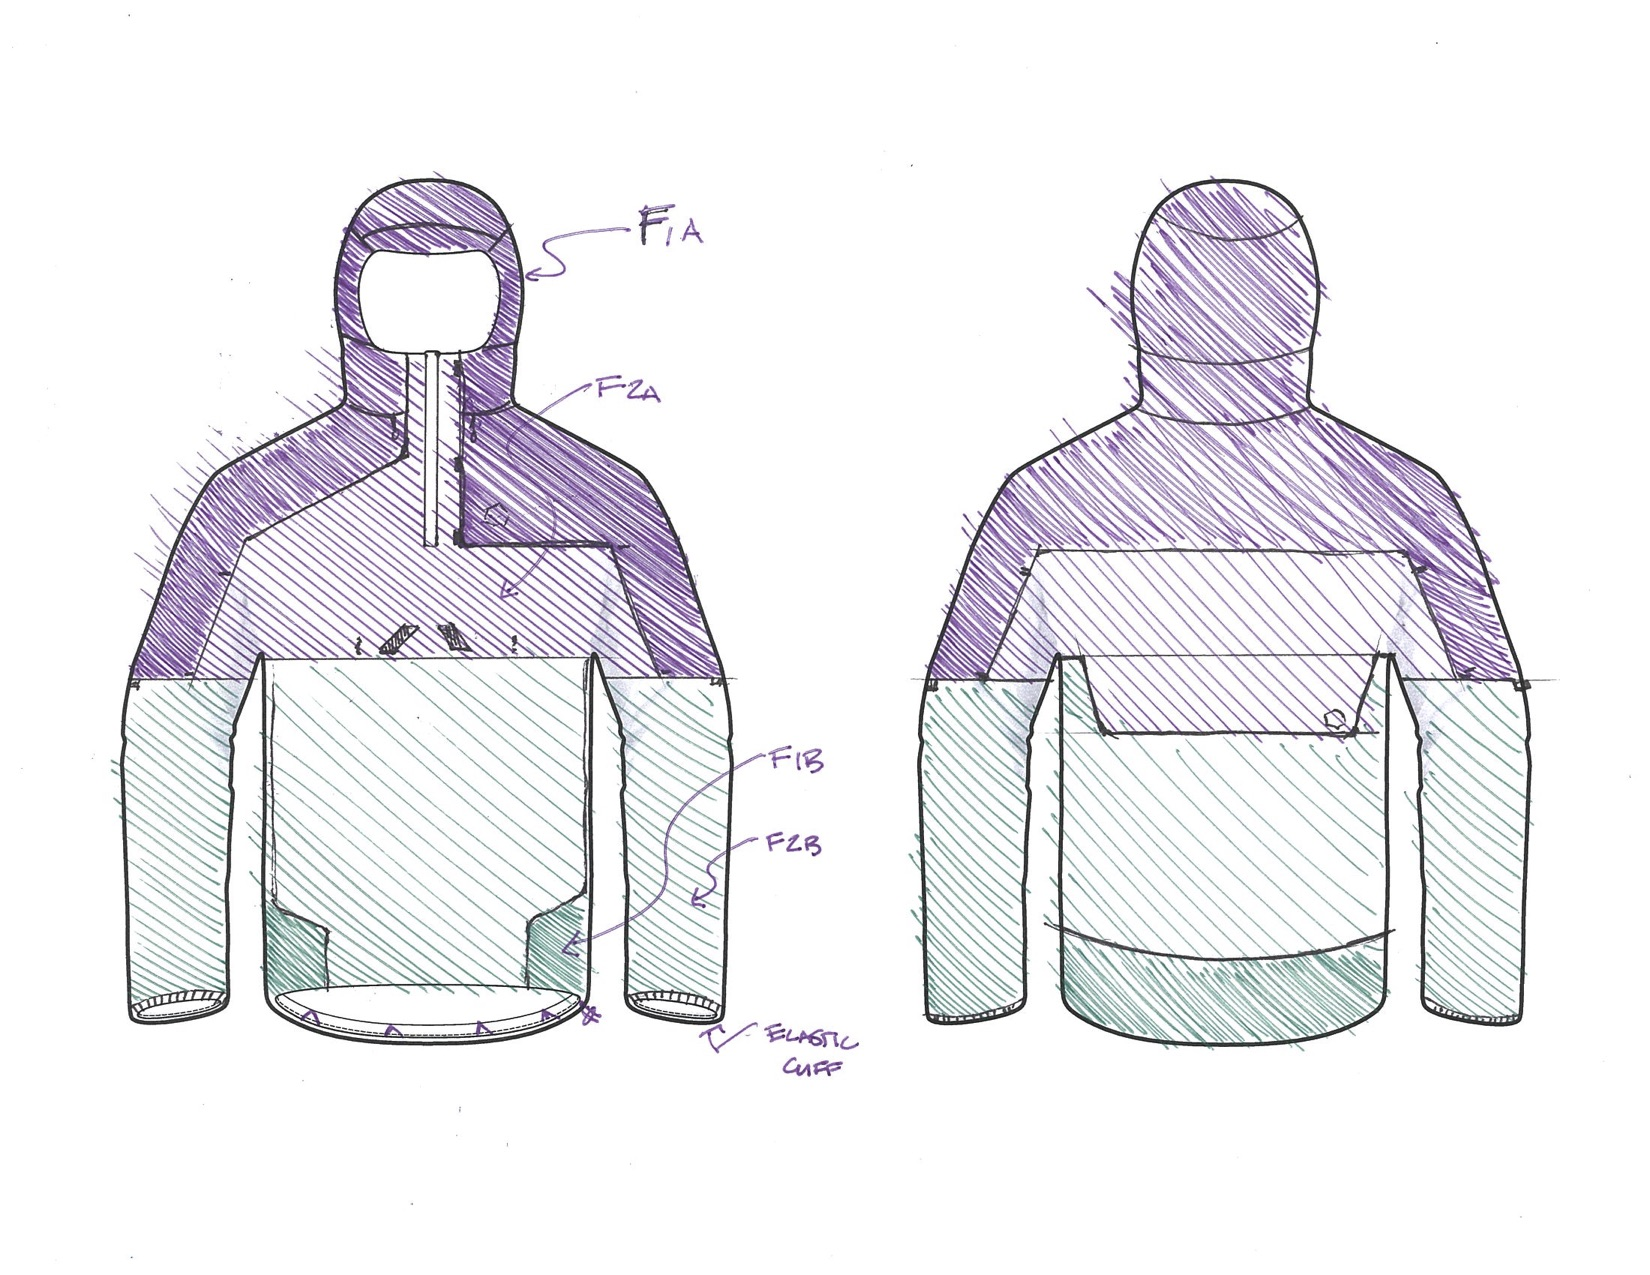 Design - After sufficient knowledge of material and construction techniques were gathered, the design on a garment began. During an internship at Mountain Hardwear, a jacket was developed that would compliment their existing ultralight hiking line. Additional research was done into the user needs and activity specifics.